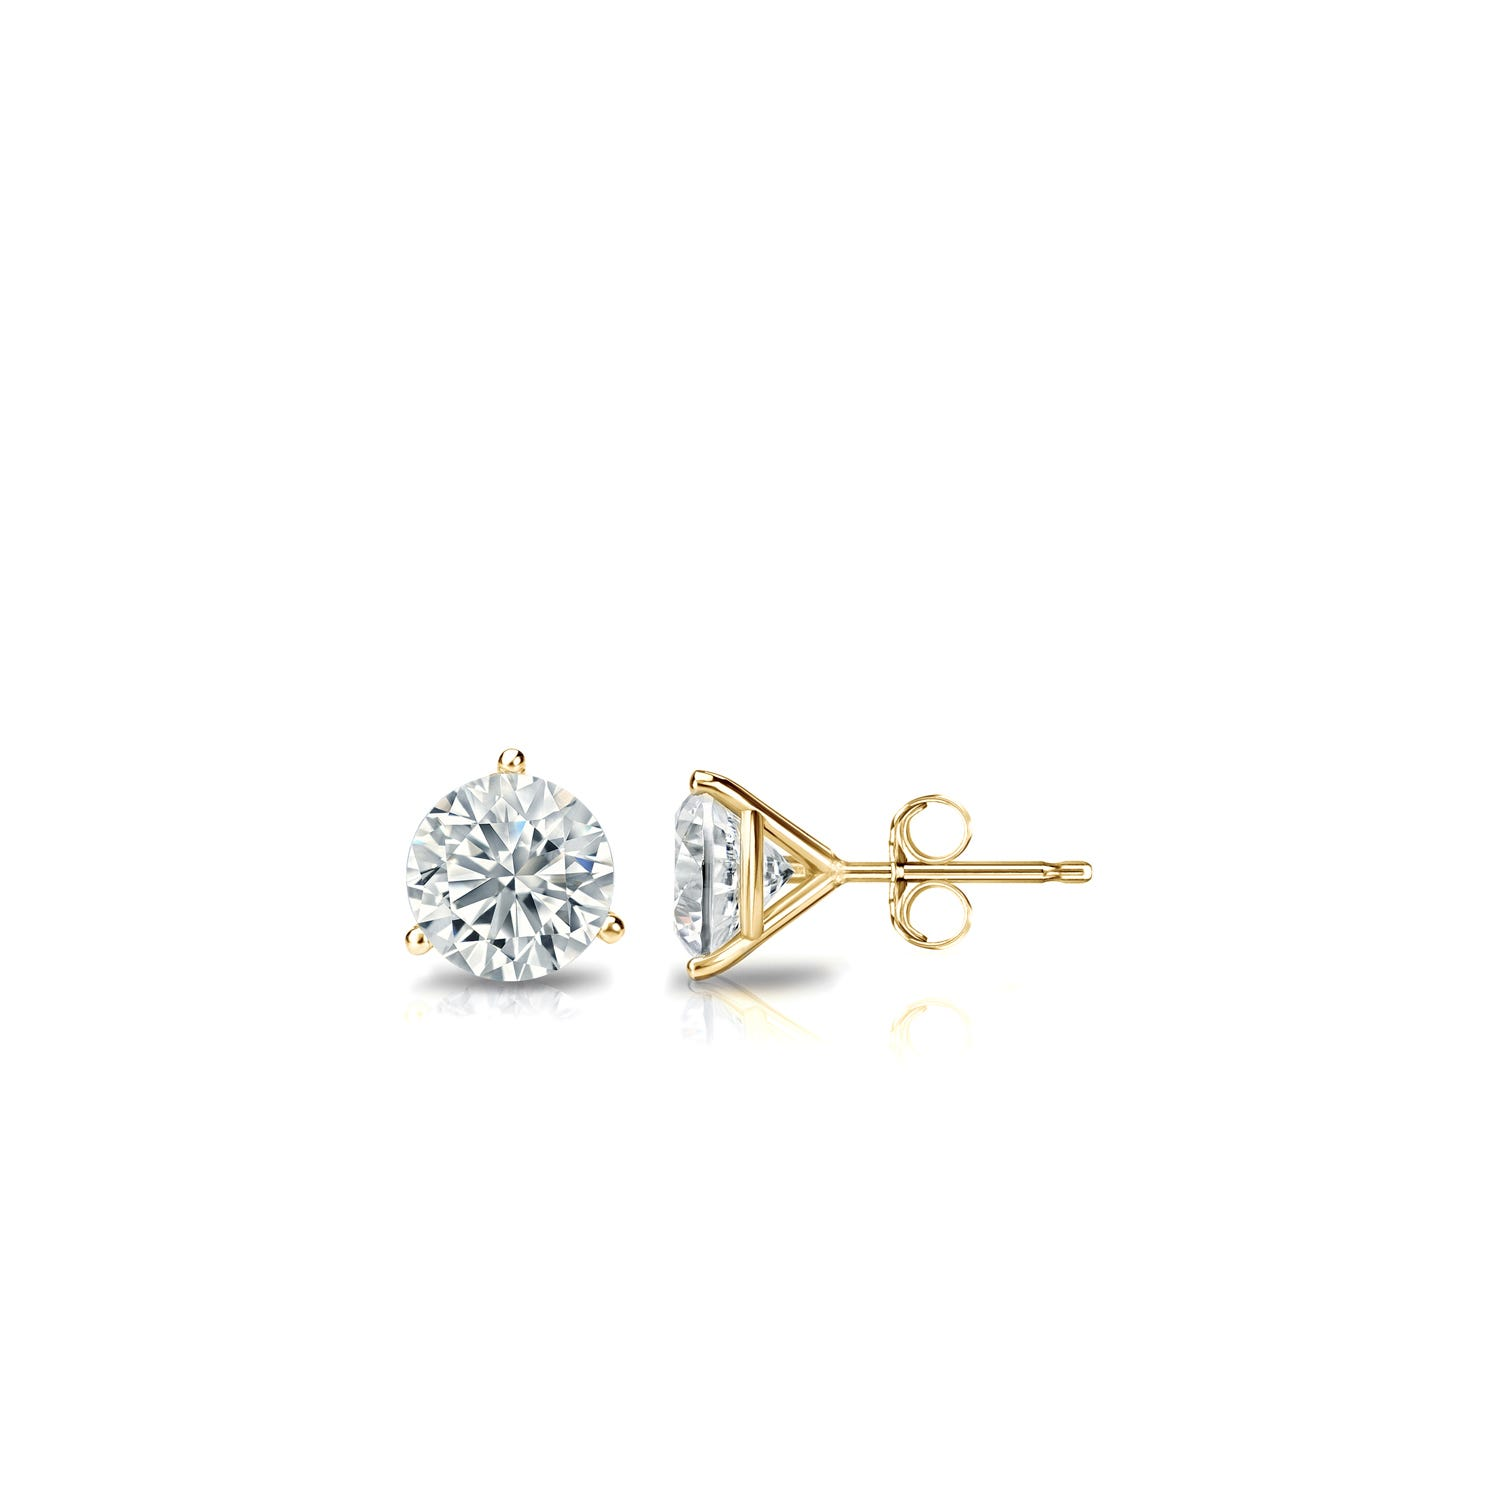 1/6 CTTW Round Diamond Solitaire Stud Earrings IJ SI1 in 14K Yellow Gold 3-Prong Setting